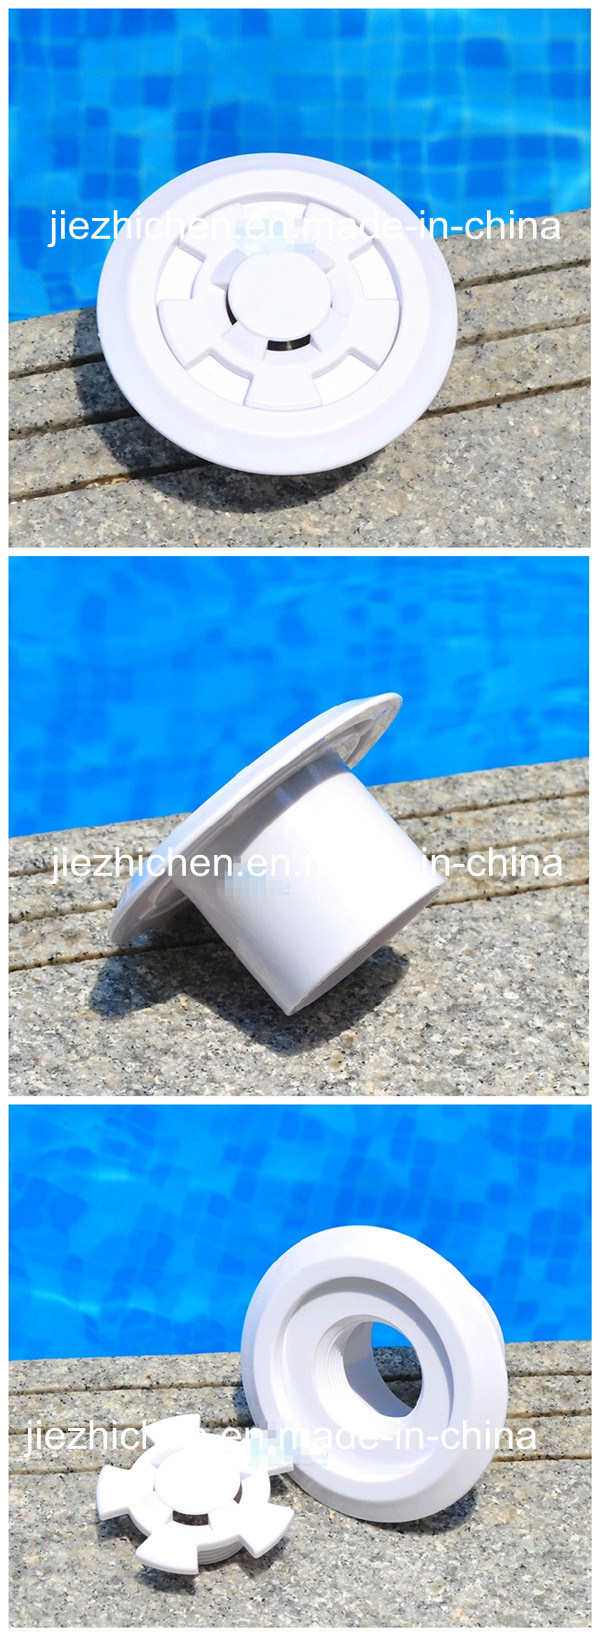 China Swimming Pool Floor Outlet Fitting Pool Water Outlet China Pool Floor Outlet Fitting